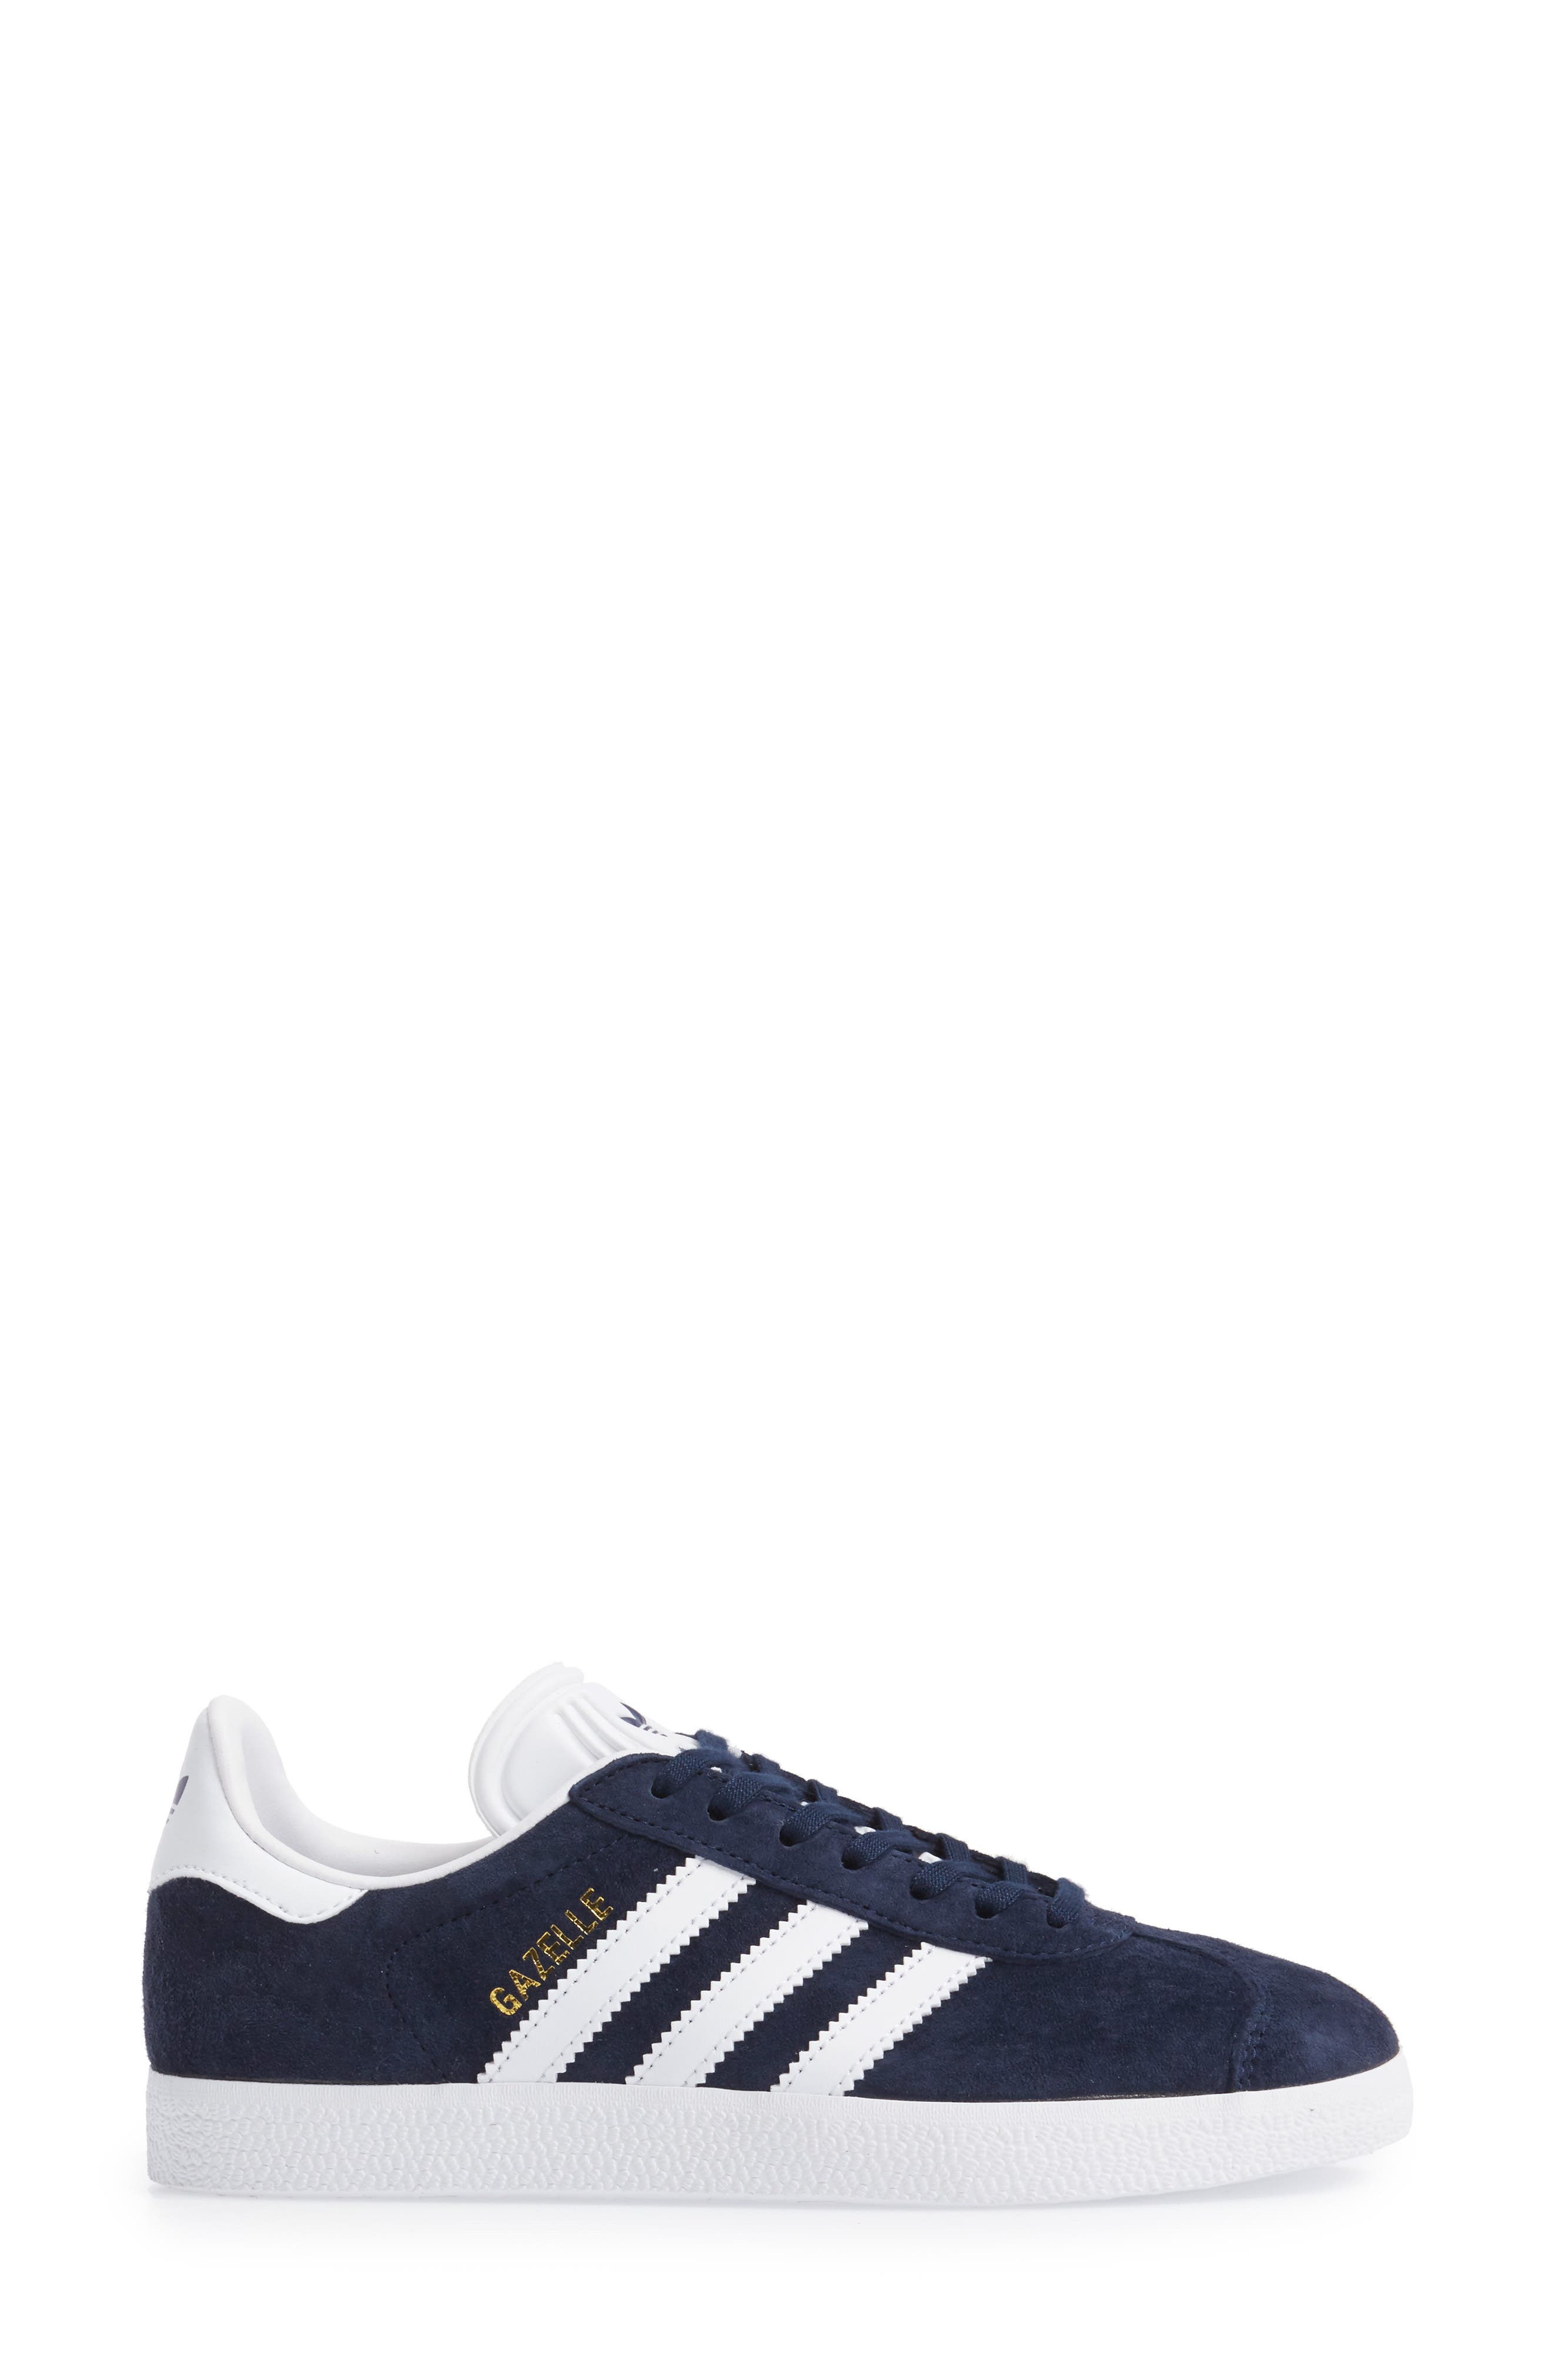 Gazelle Sneaker,                             Alternate thumbnail 3, color,                             Navy/ White/ Gold Metallic